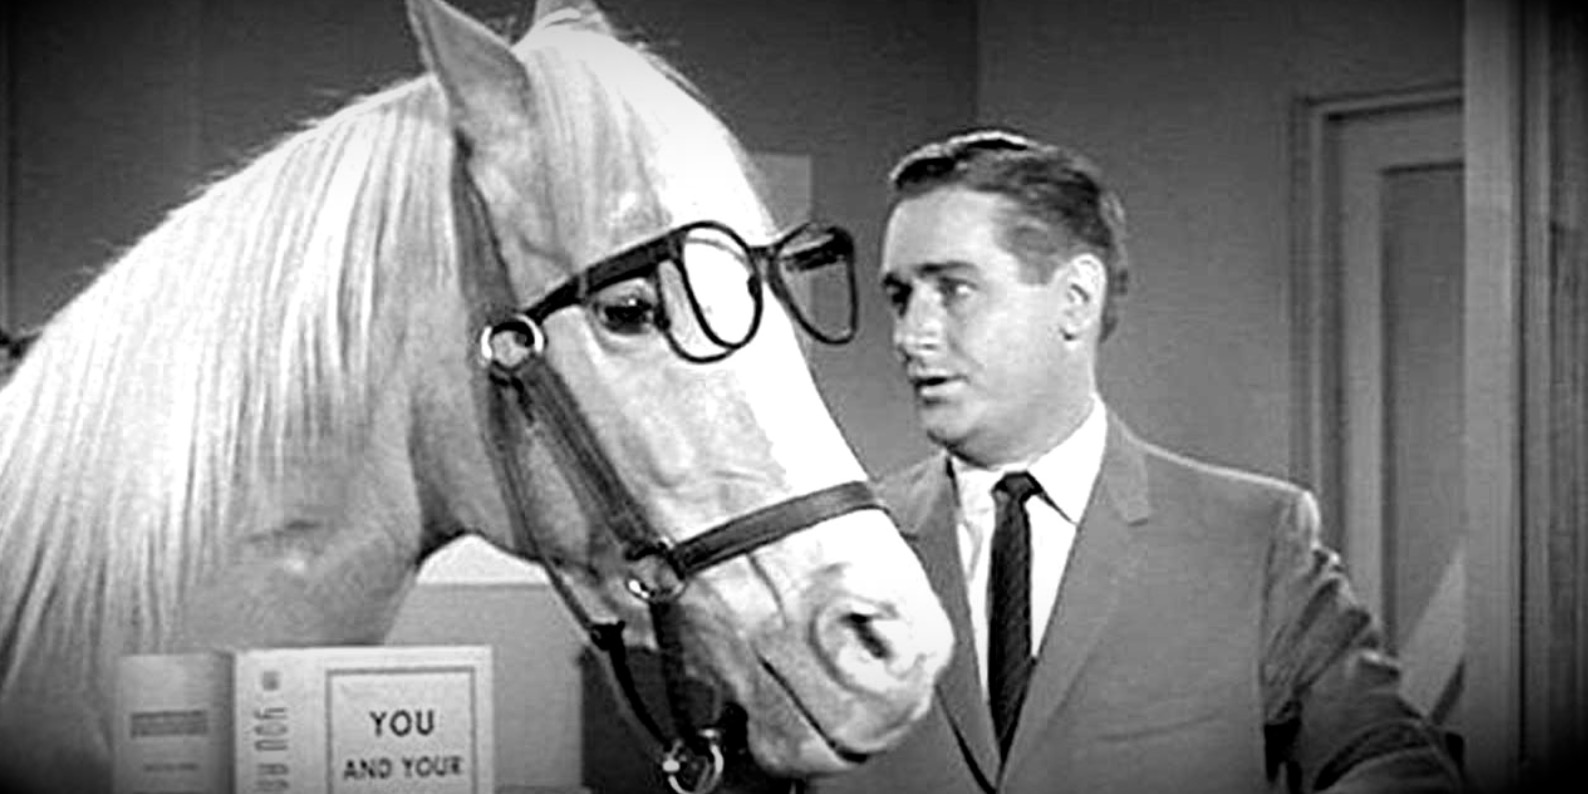 mister ed, 60s tv show main character, tv